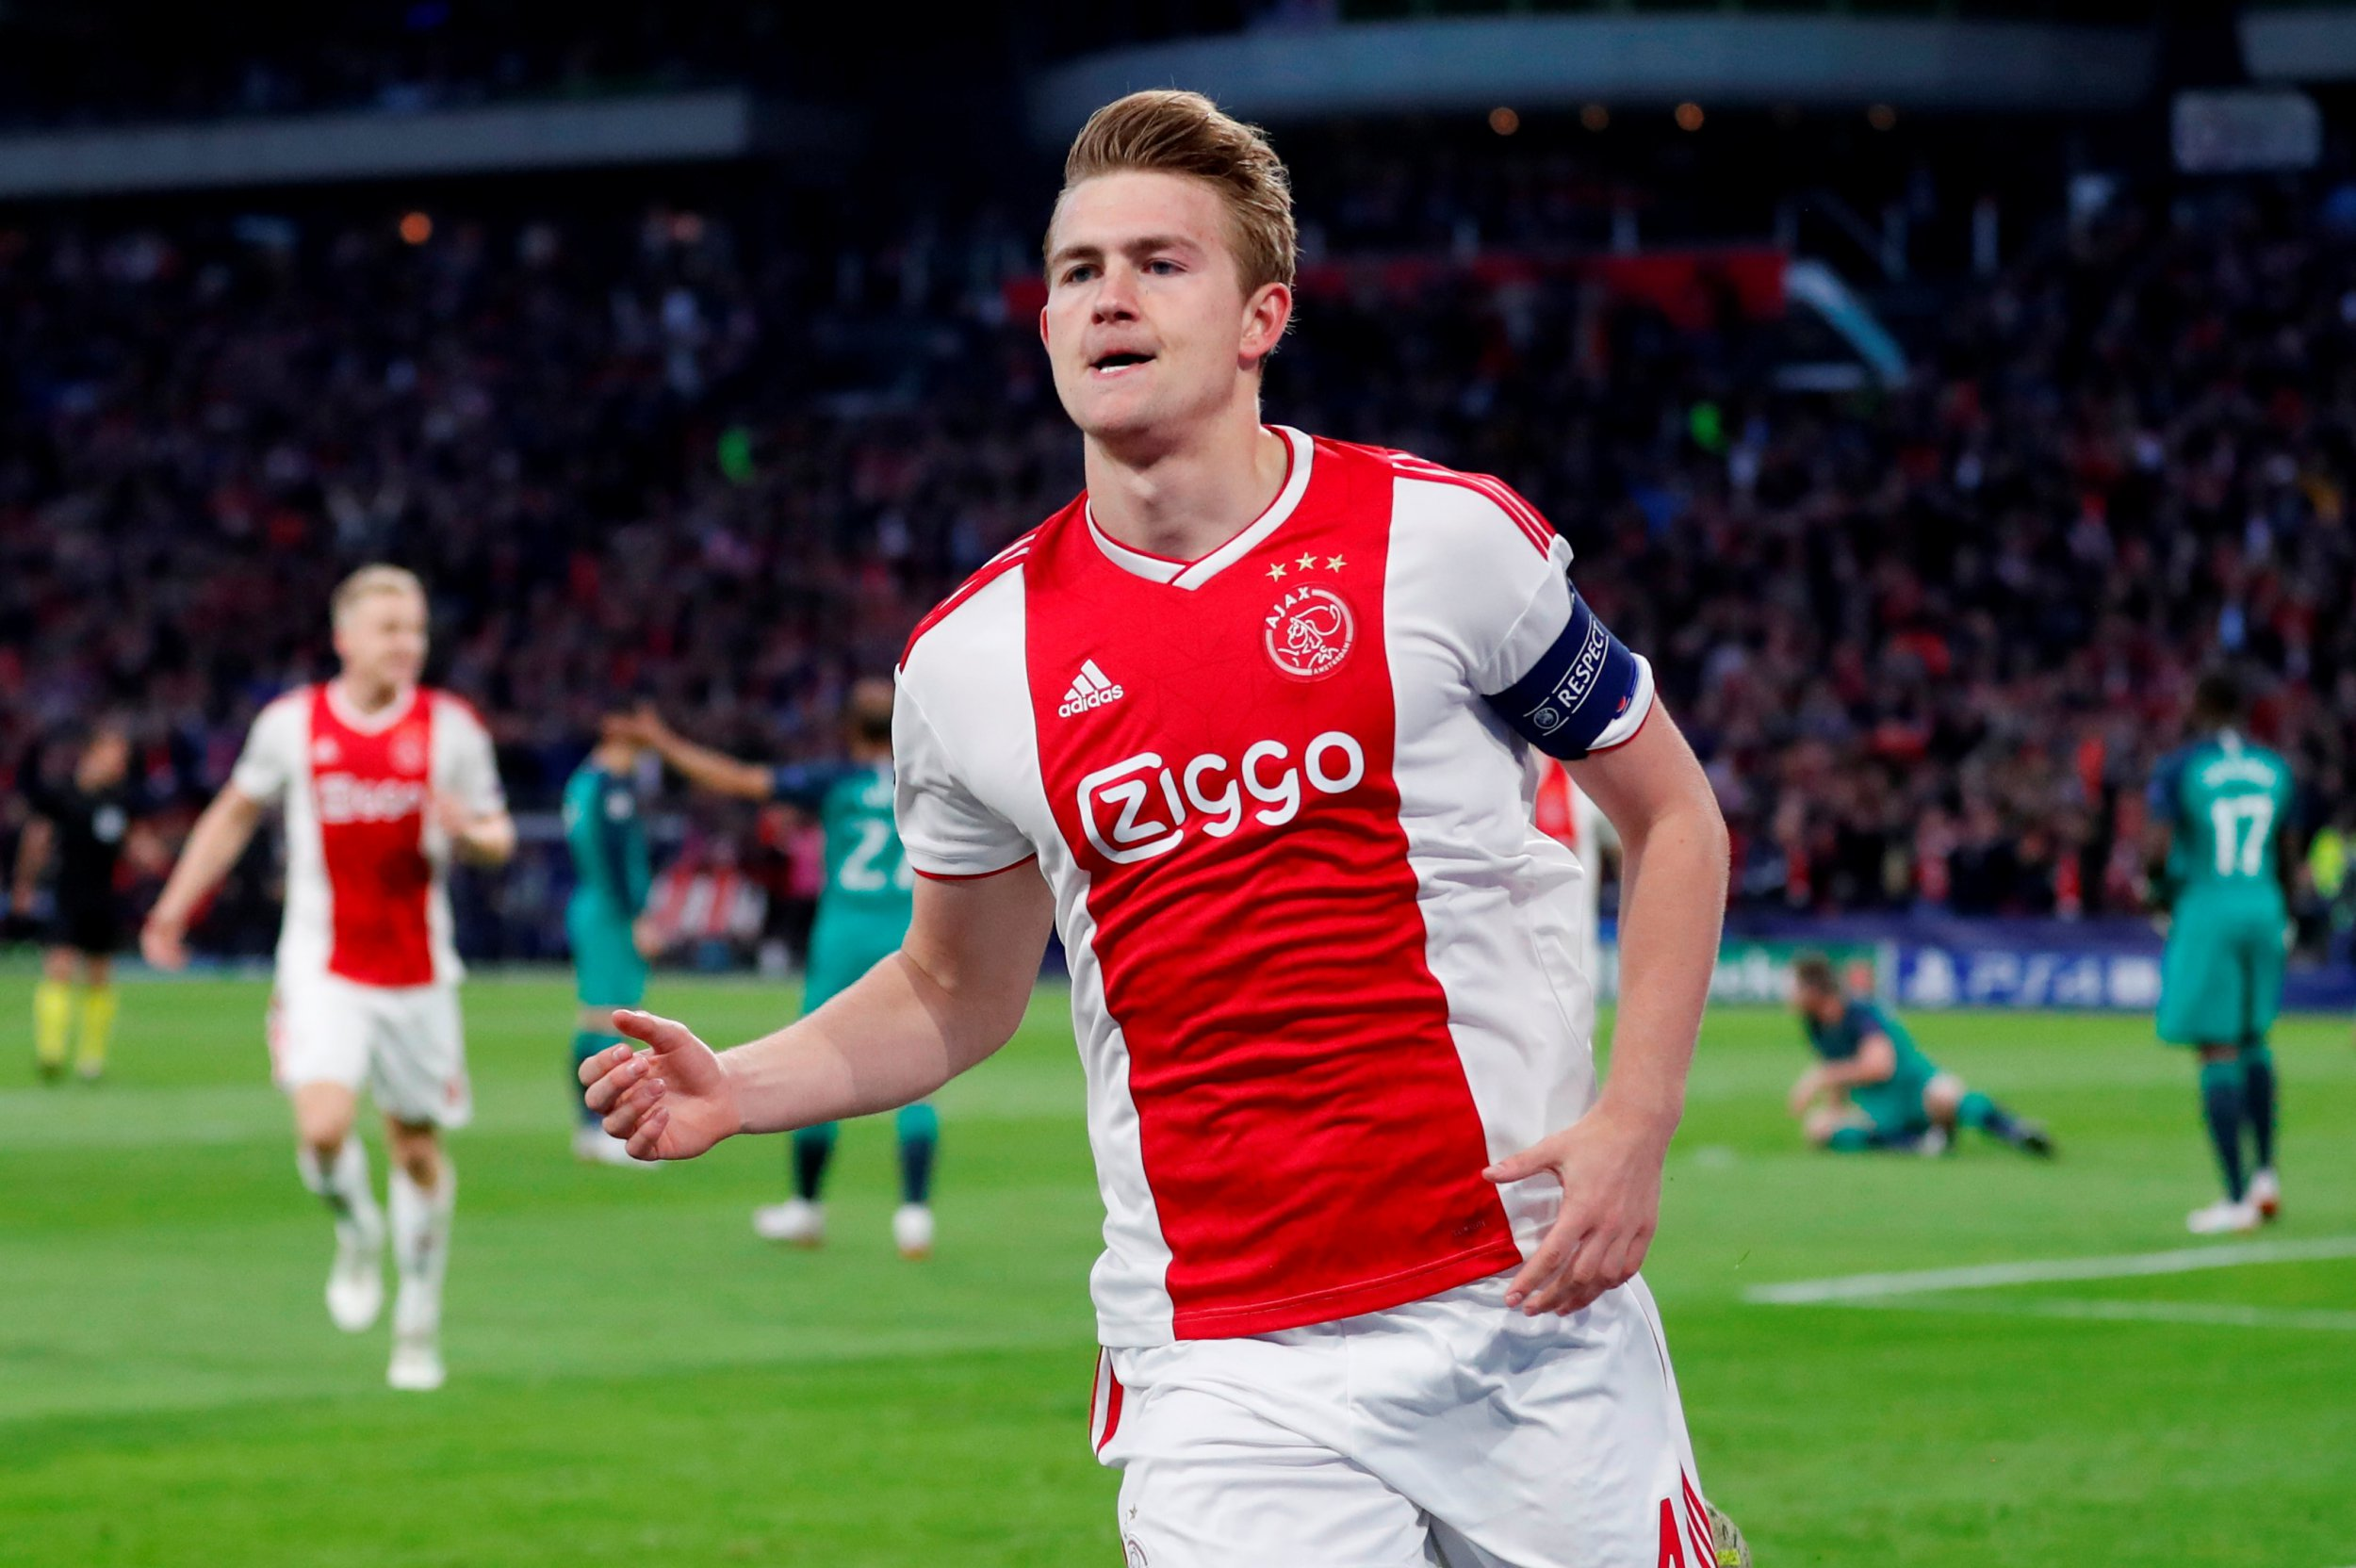 Matthijs de Ligt is being linked with a host of clubs this summer